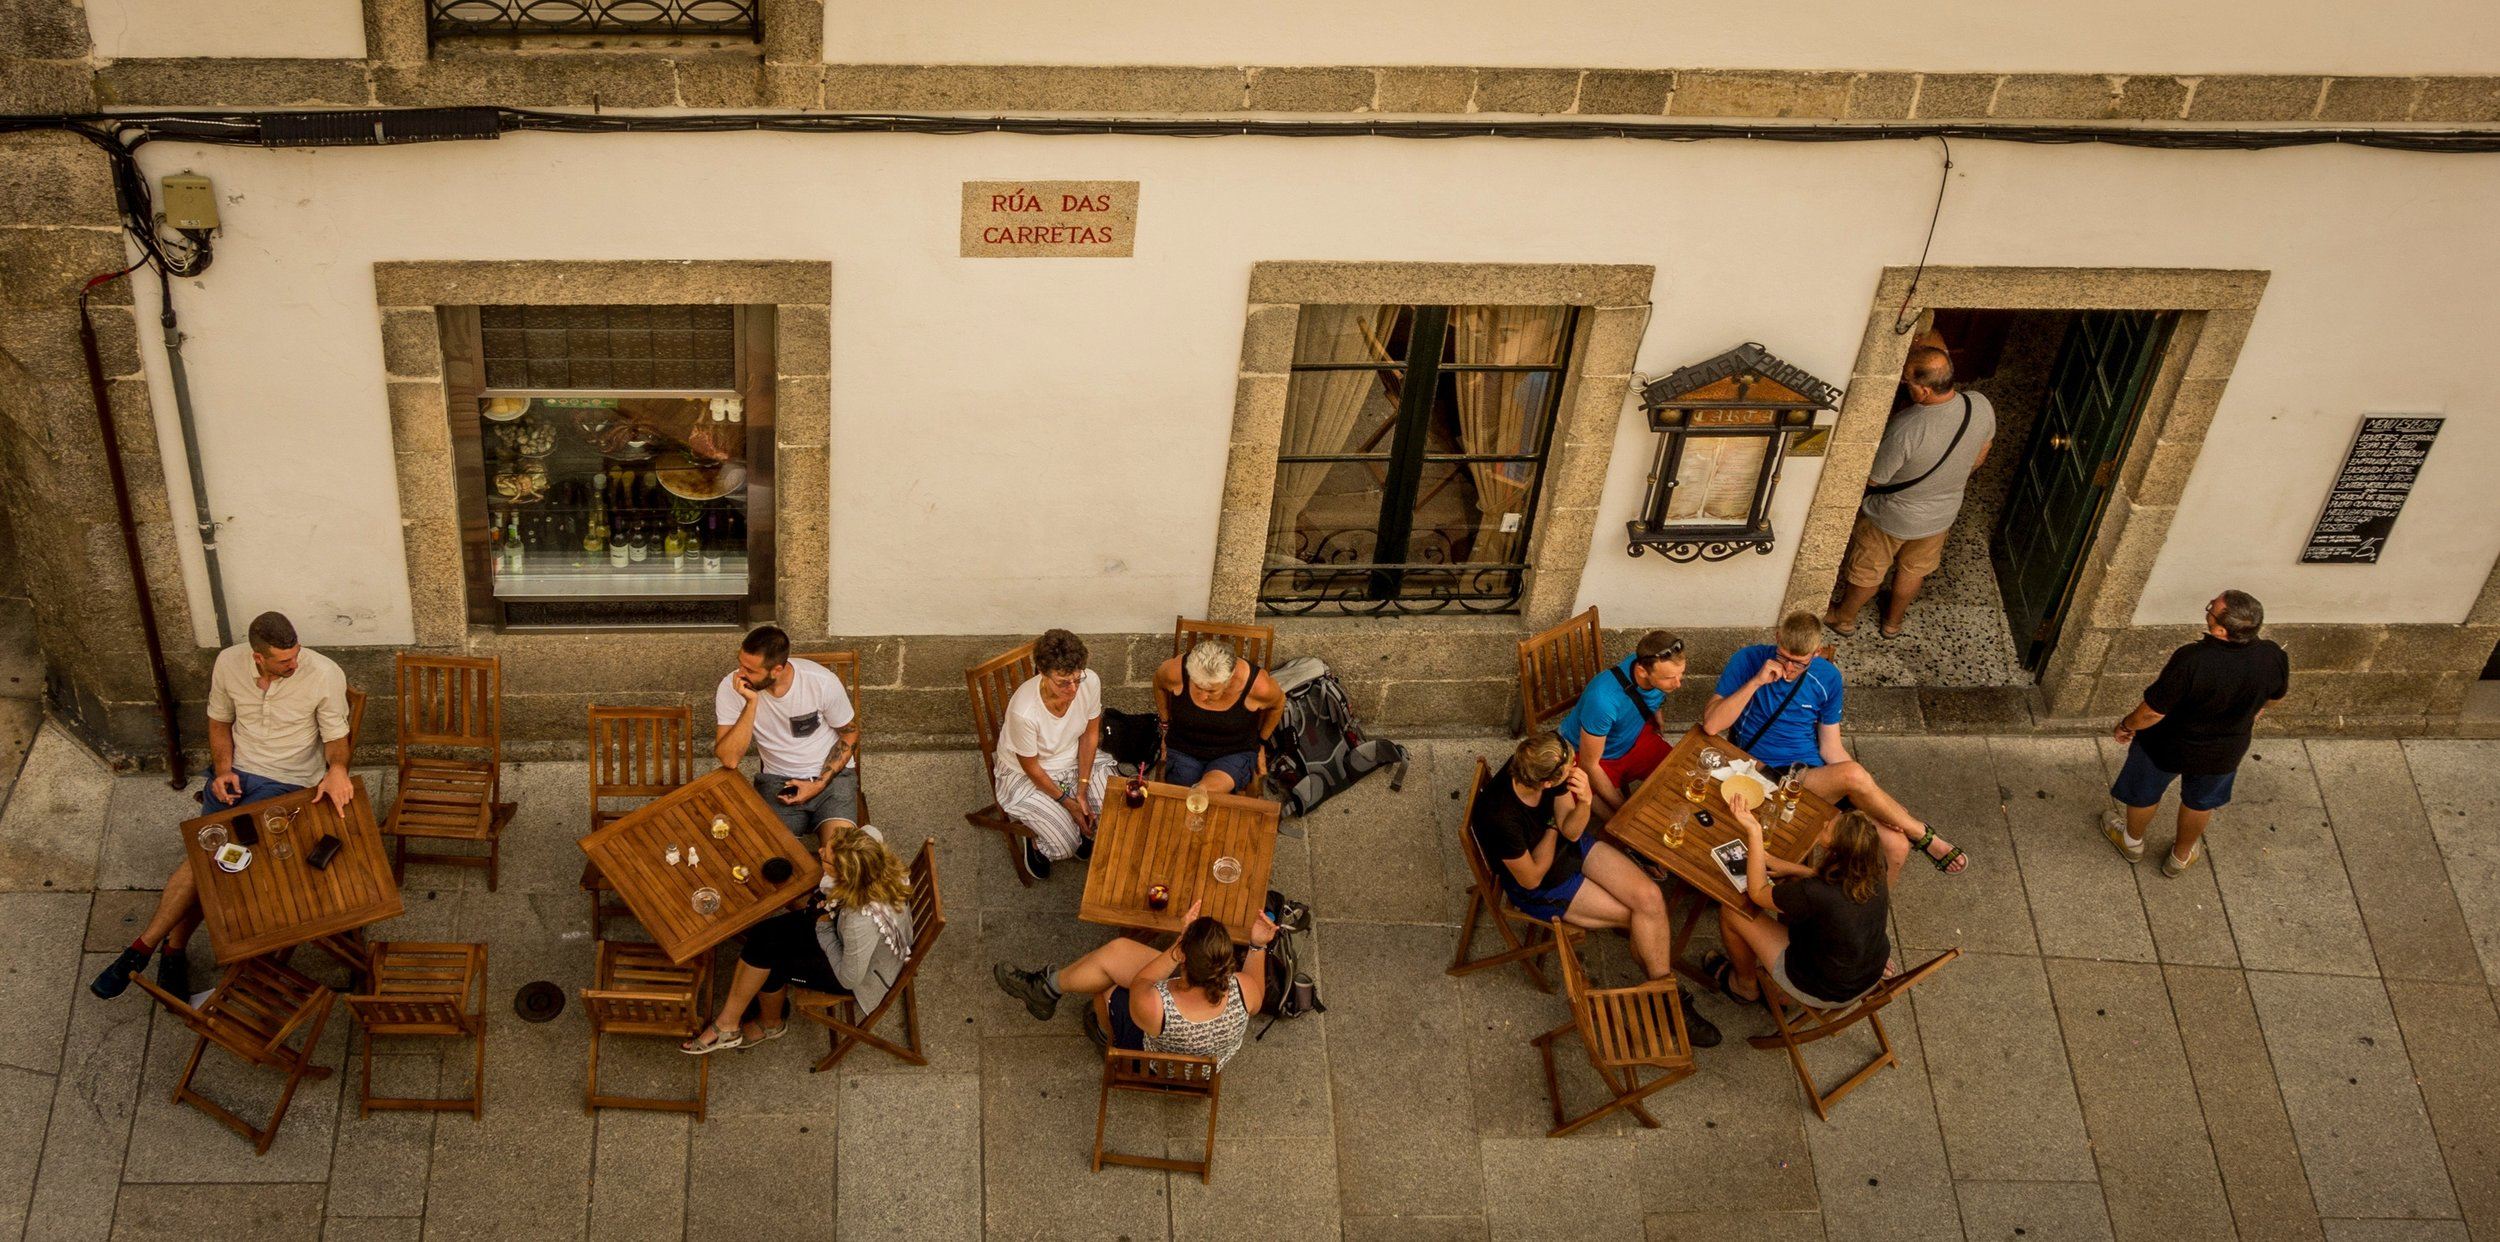 aerial shot of people sitting at tables at an outdoor cafe